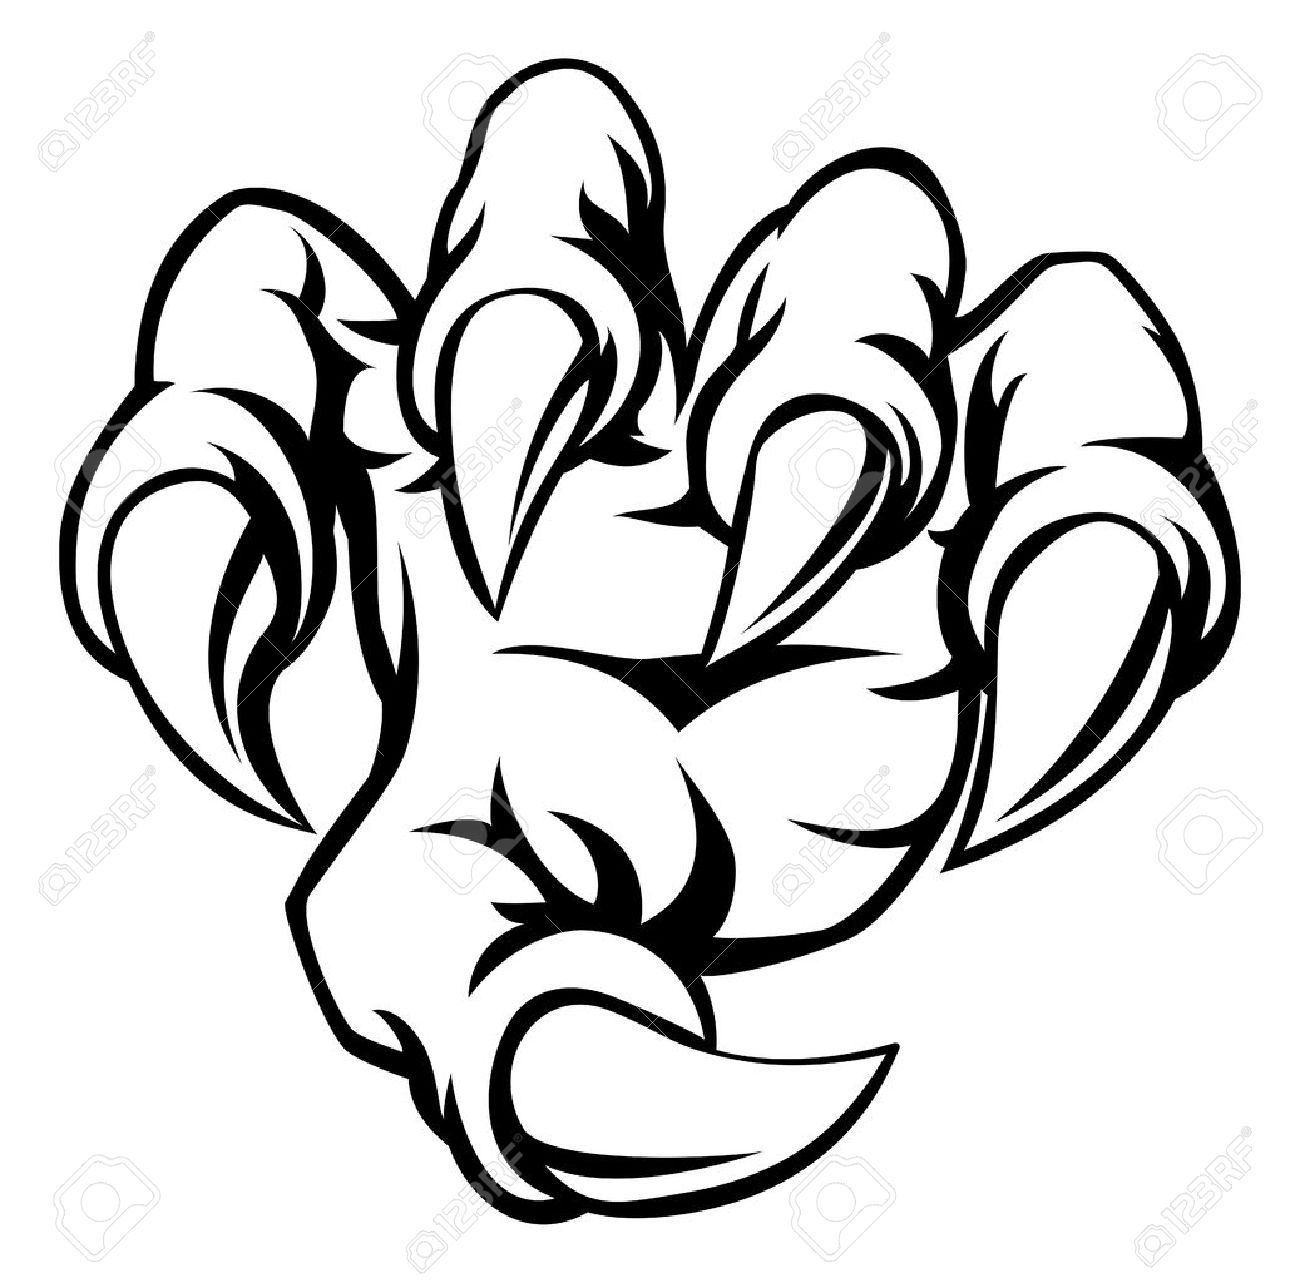 1300x1283 A Cartoon Hand Monster Claw Illustration Royalty Free Cliparts